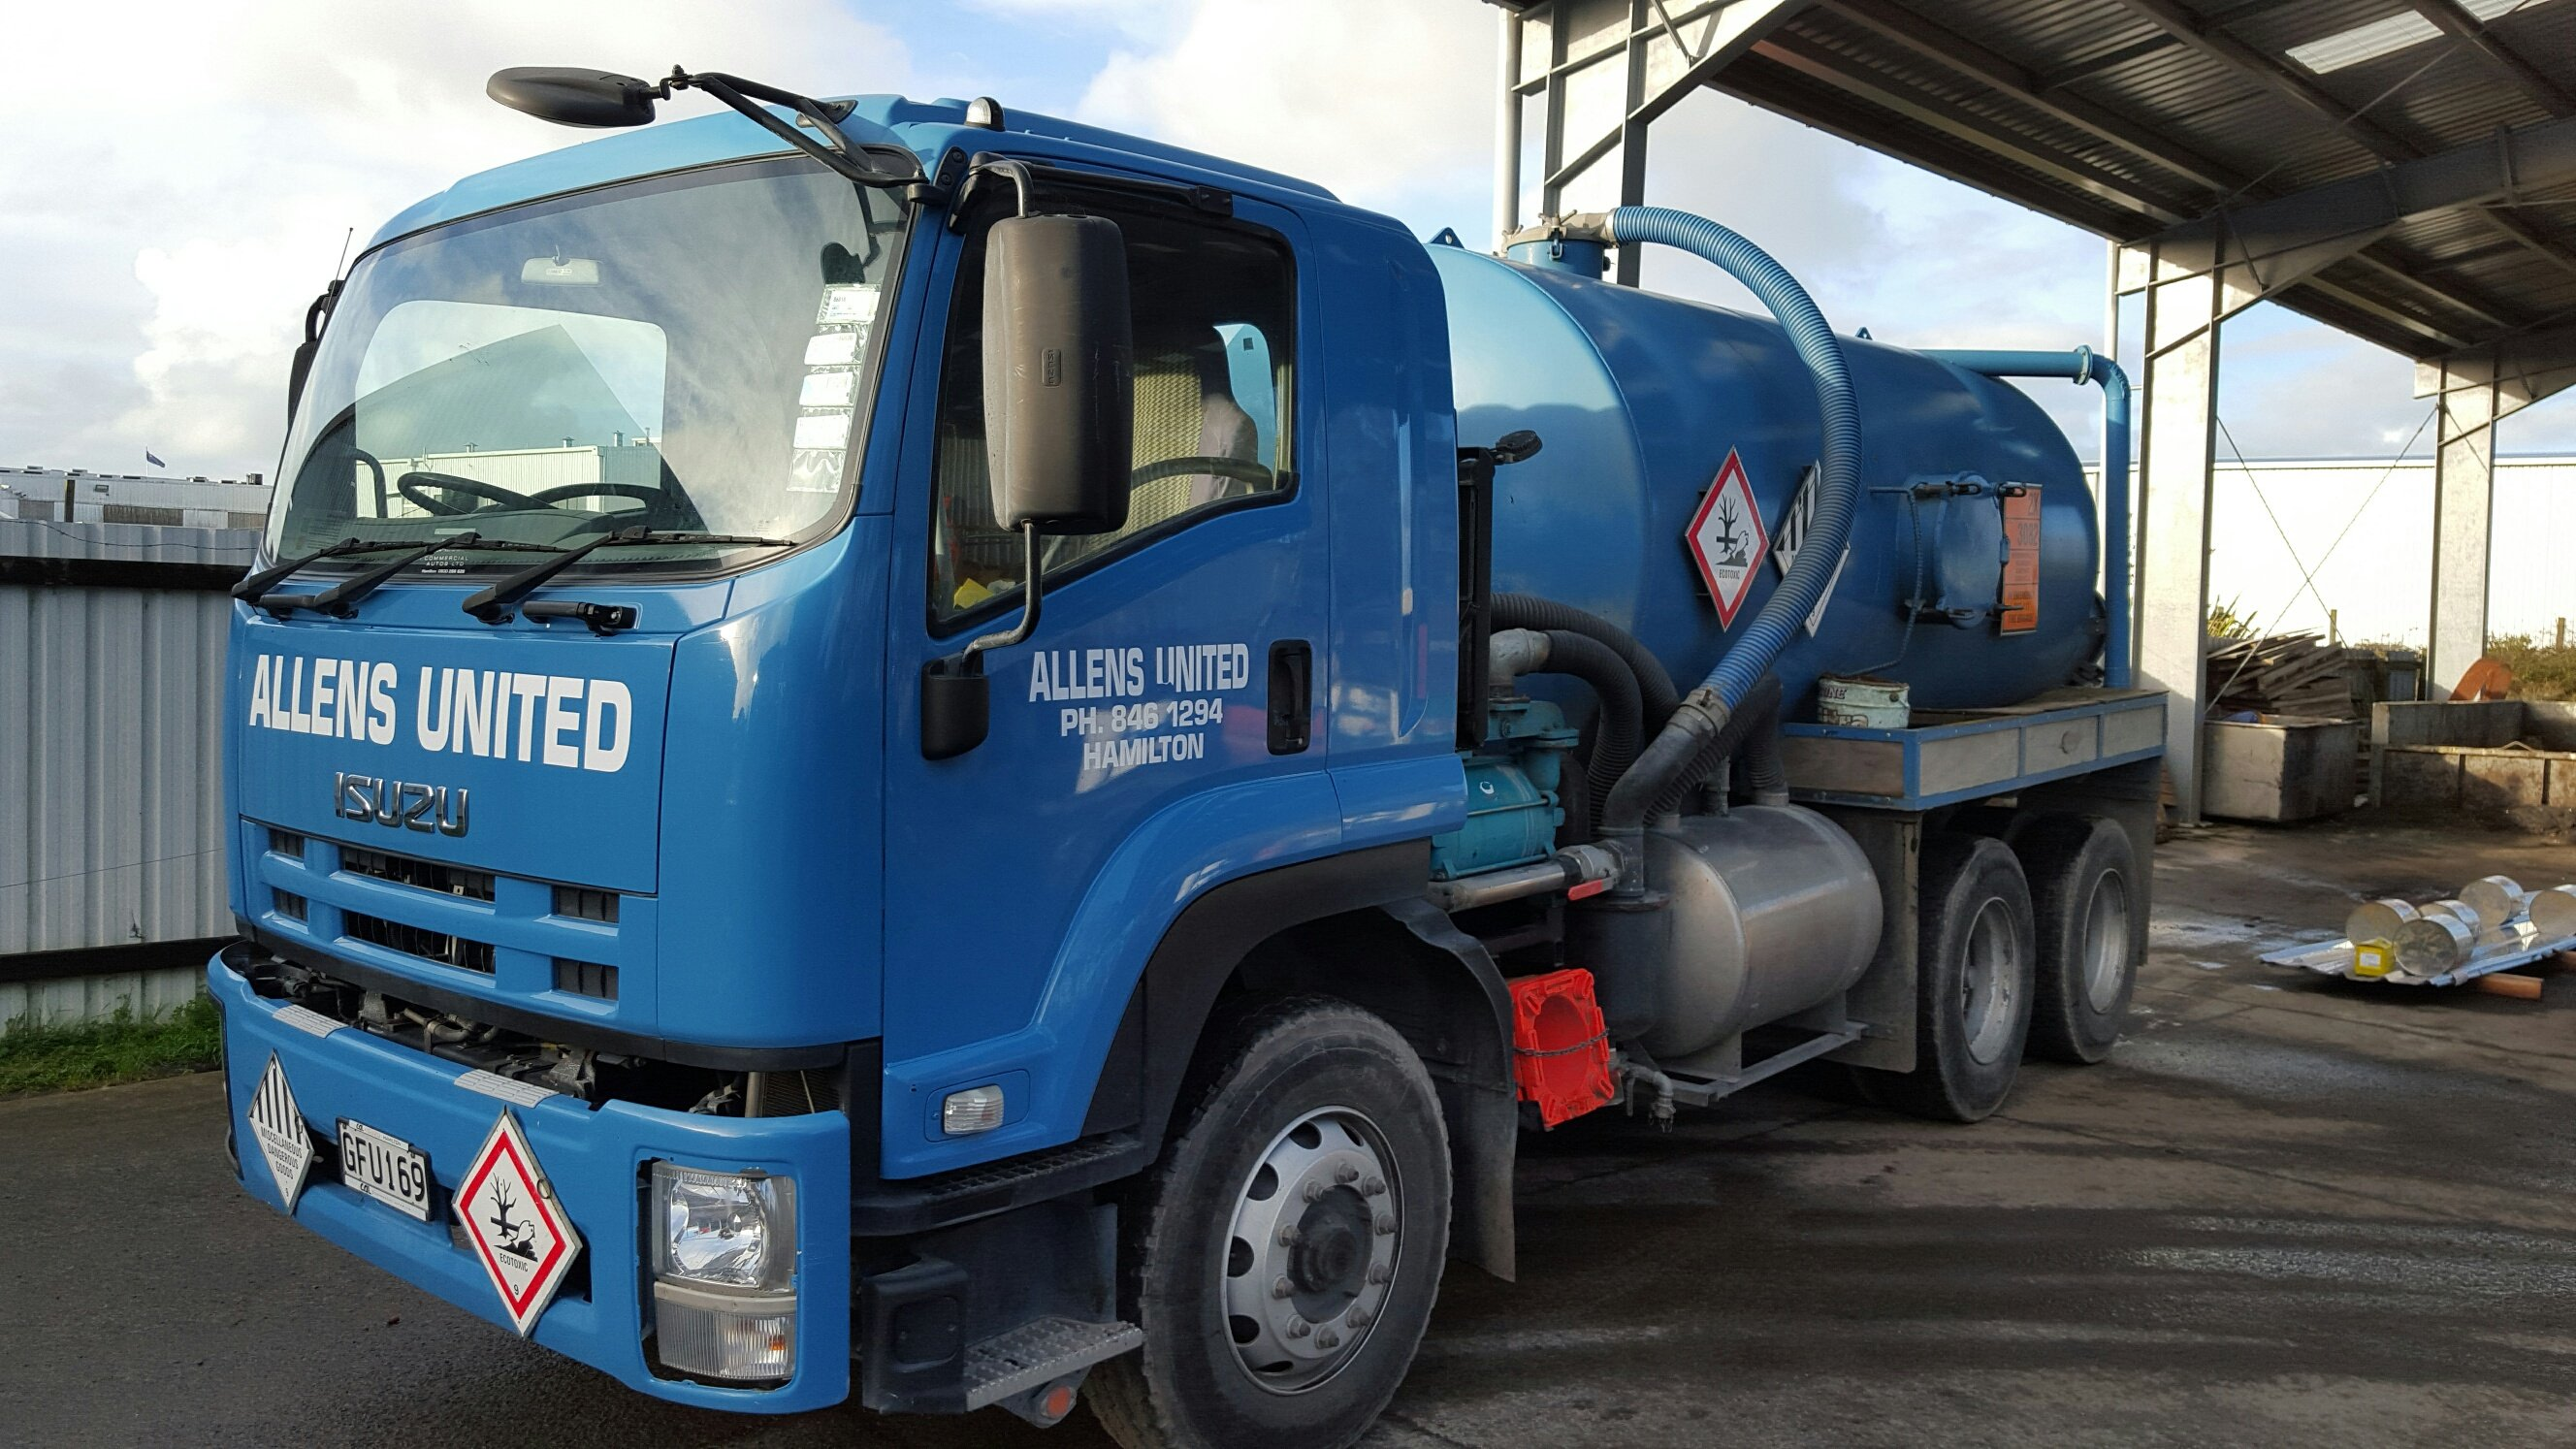 Liquid waste disposal services in Dinsdale